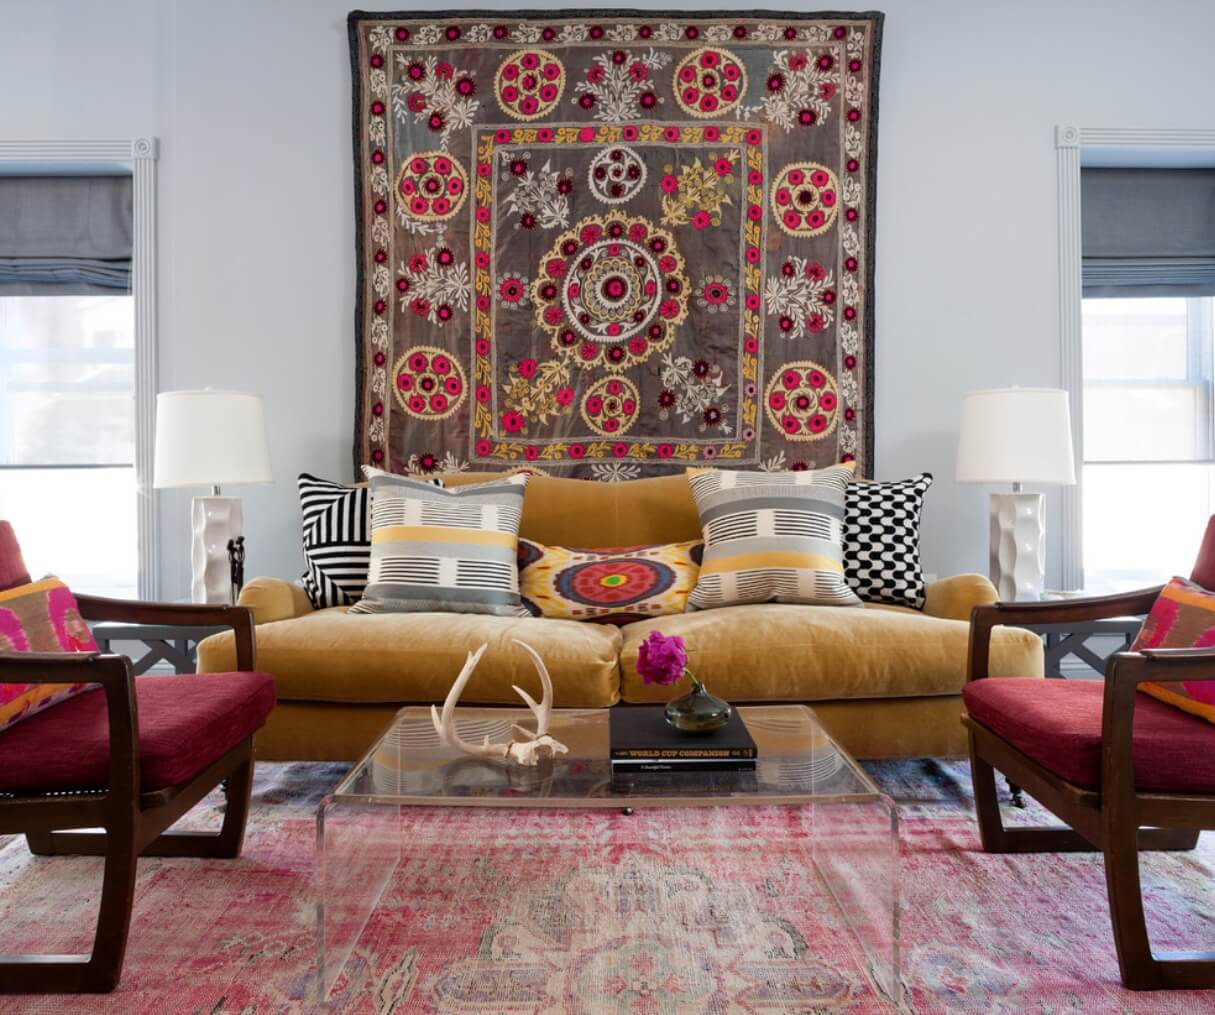 2019 Interior Design Trends Boho Style